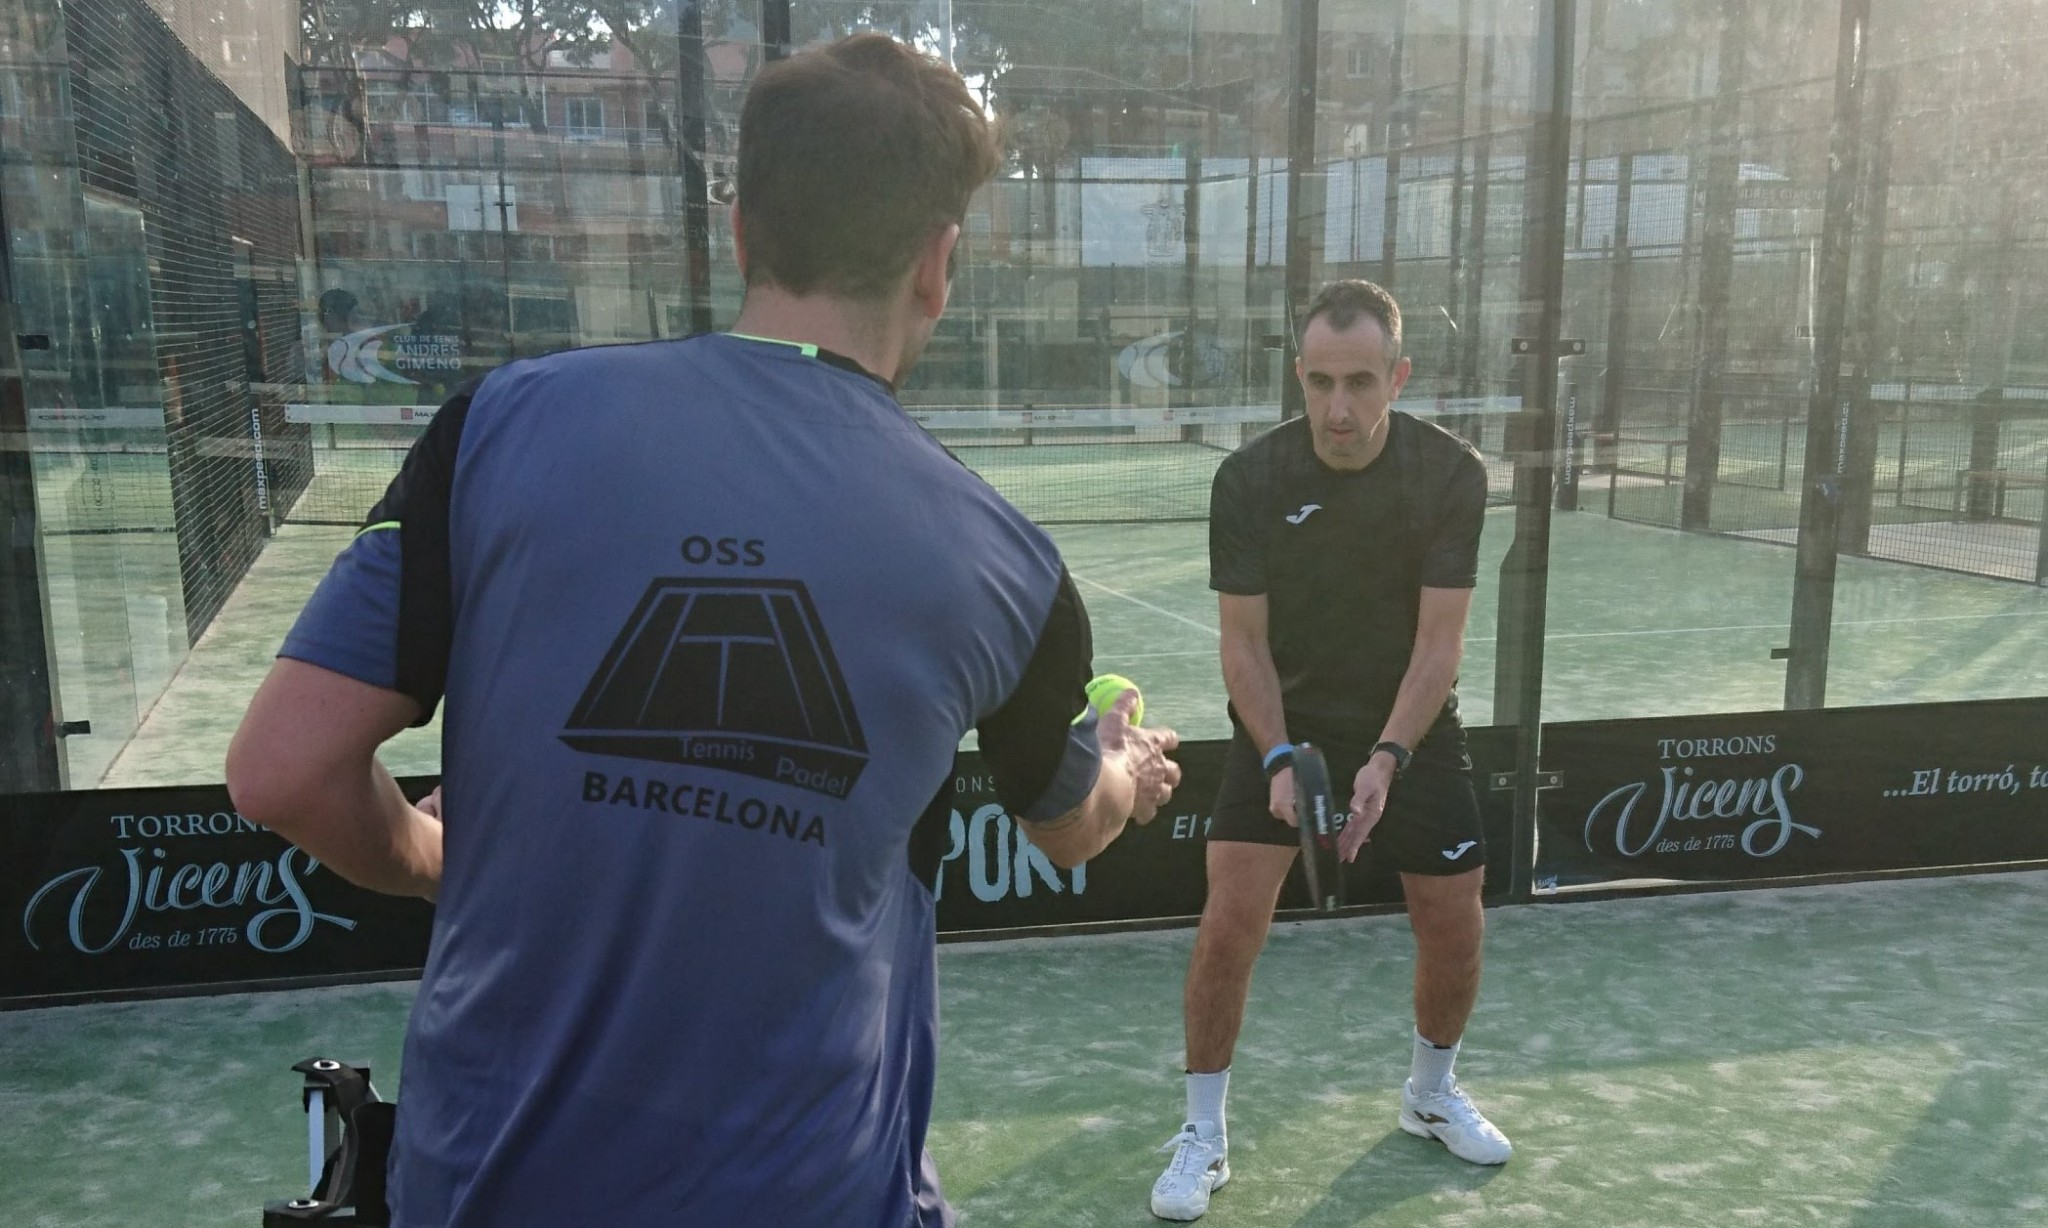 stage padel oss barcelona | world padel tour stage padel